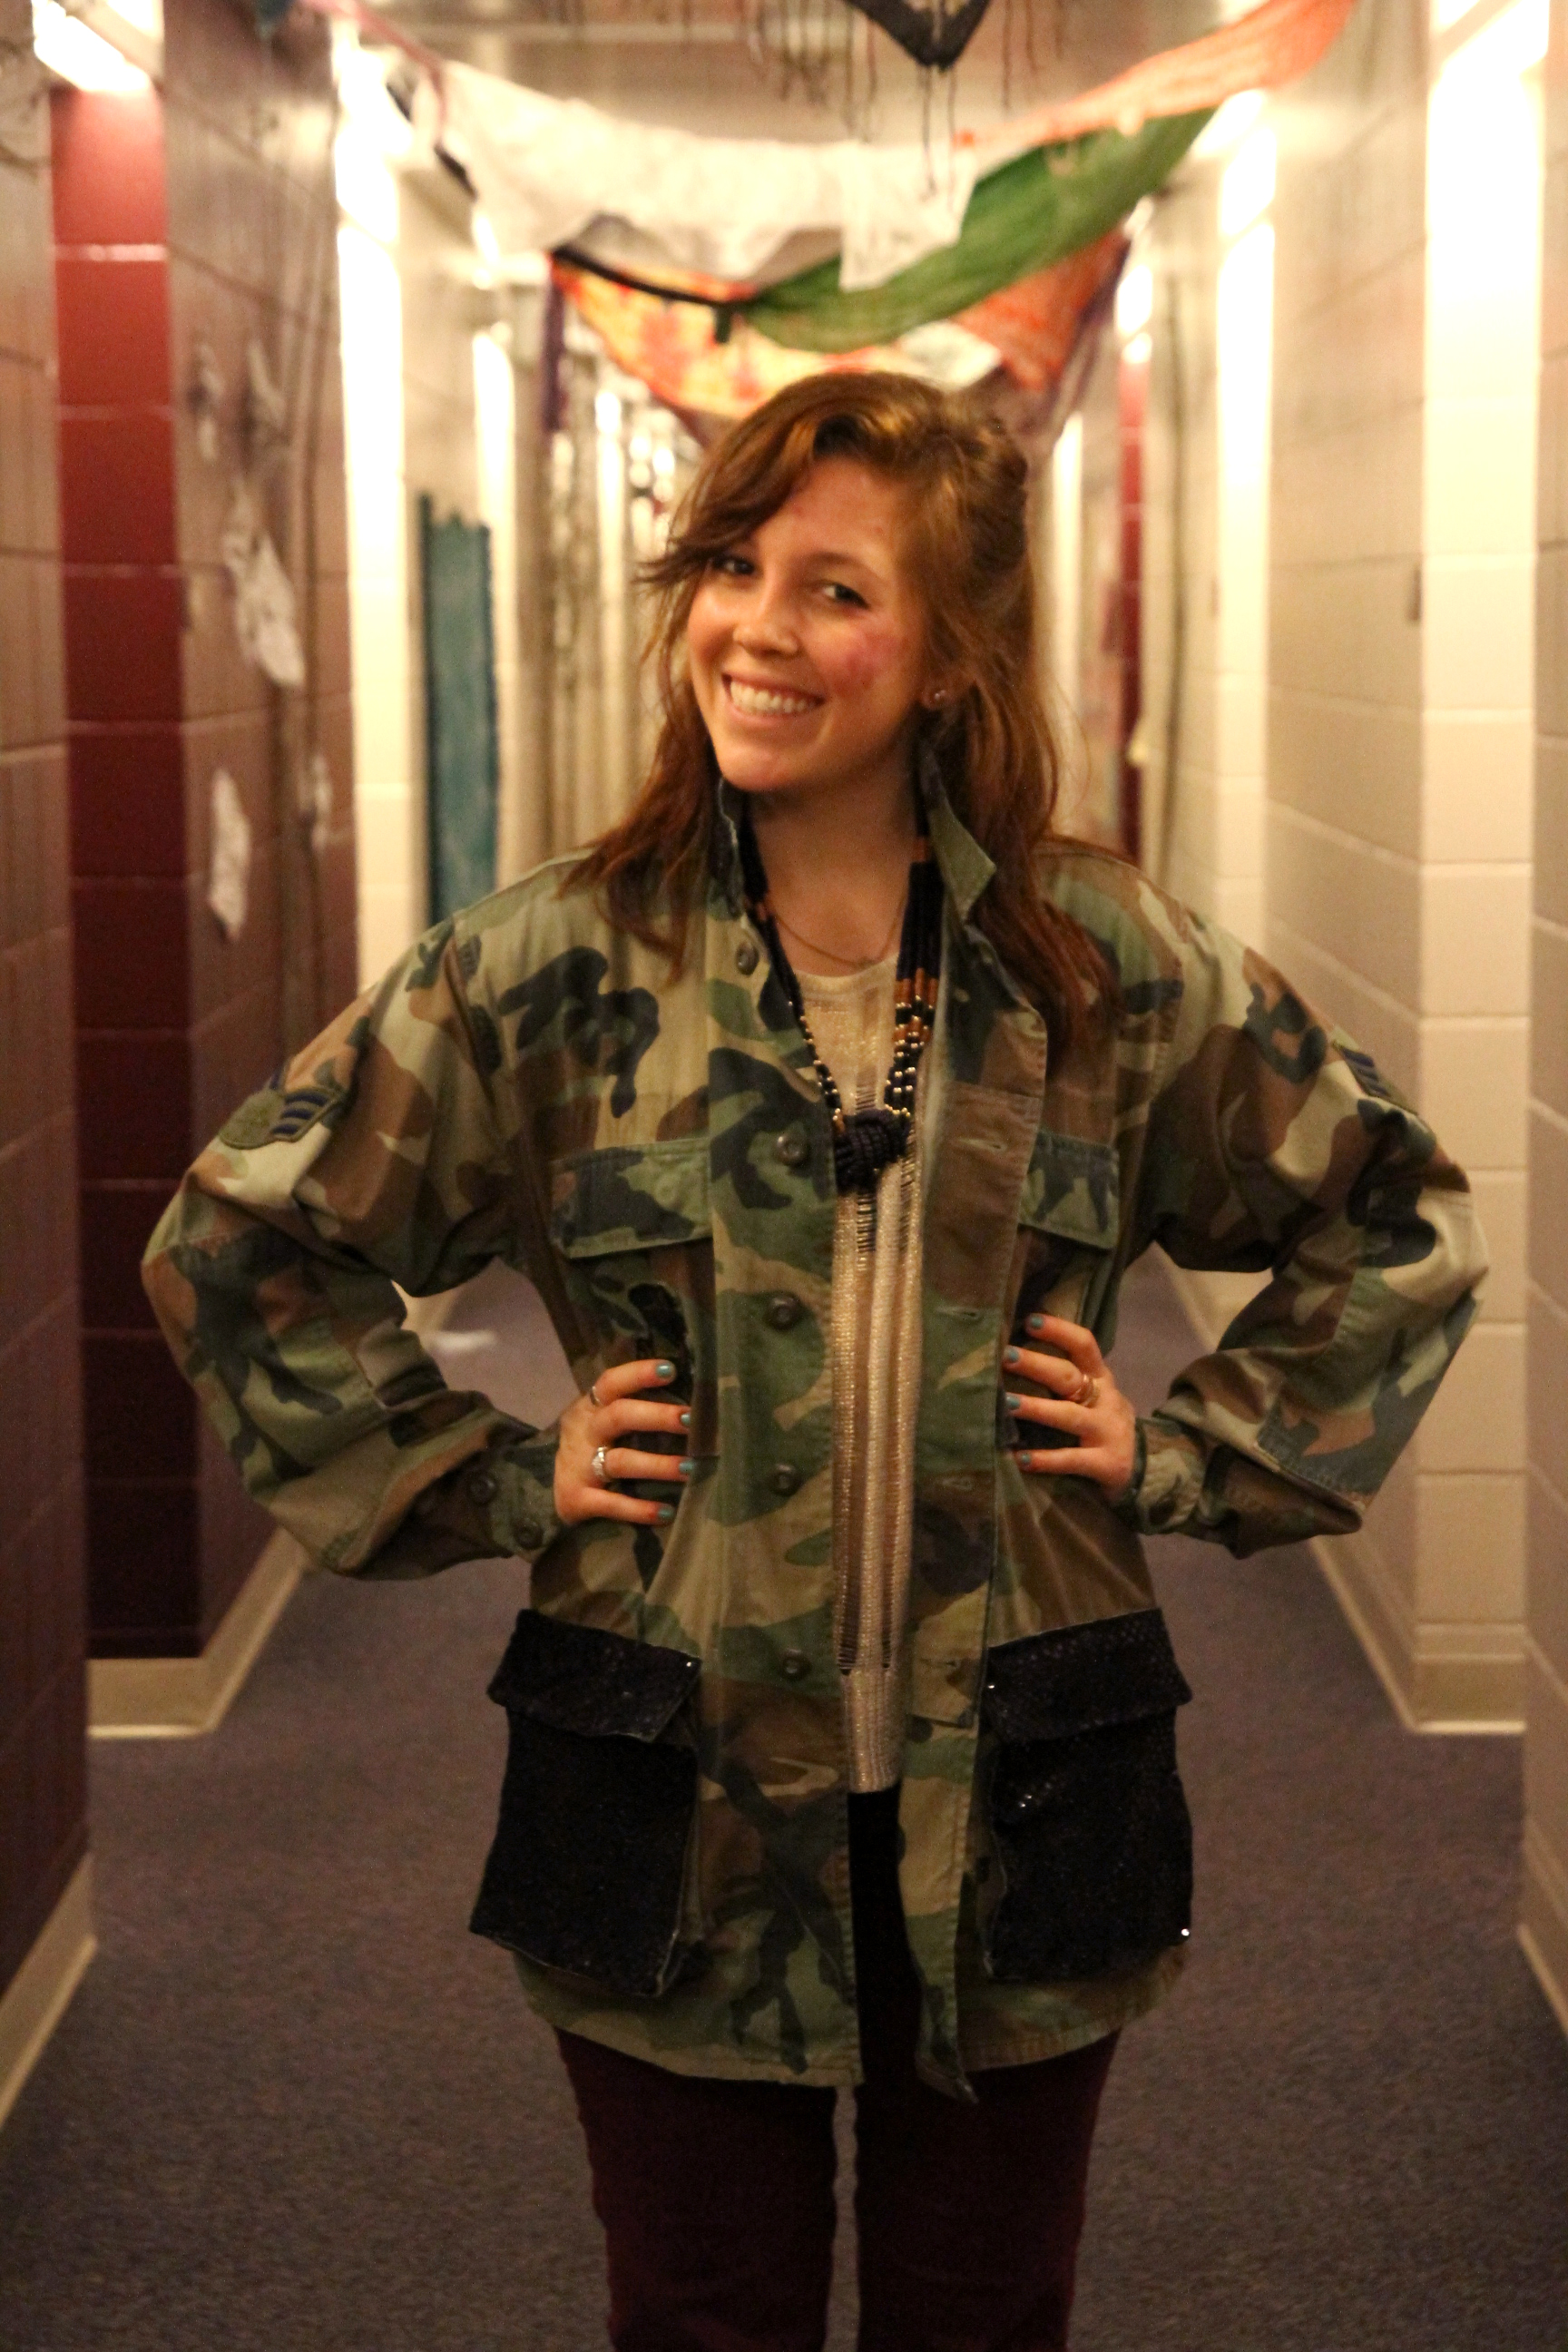 Rachel Smucker wearing her upcycled army jacket in a residence hall